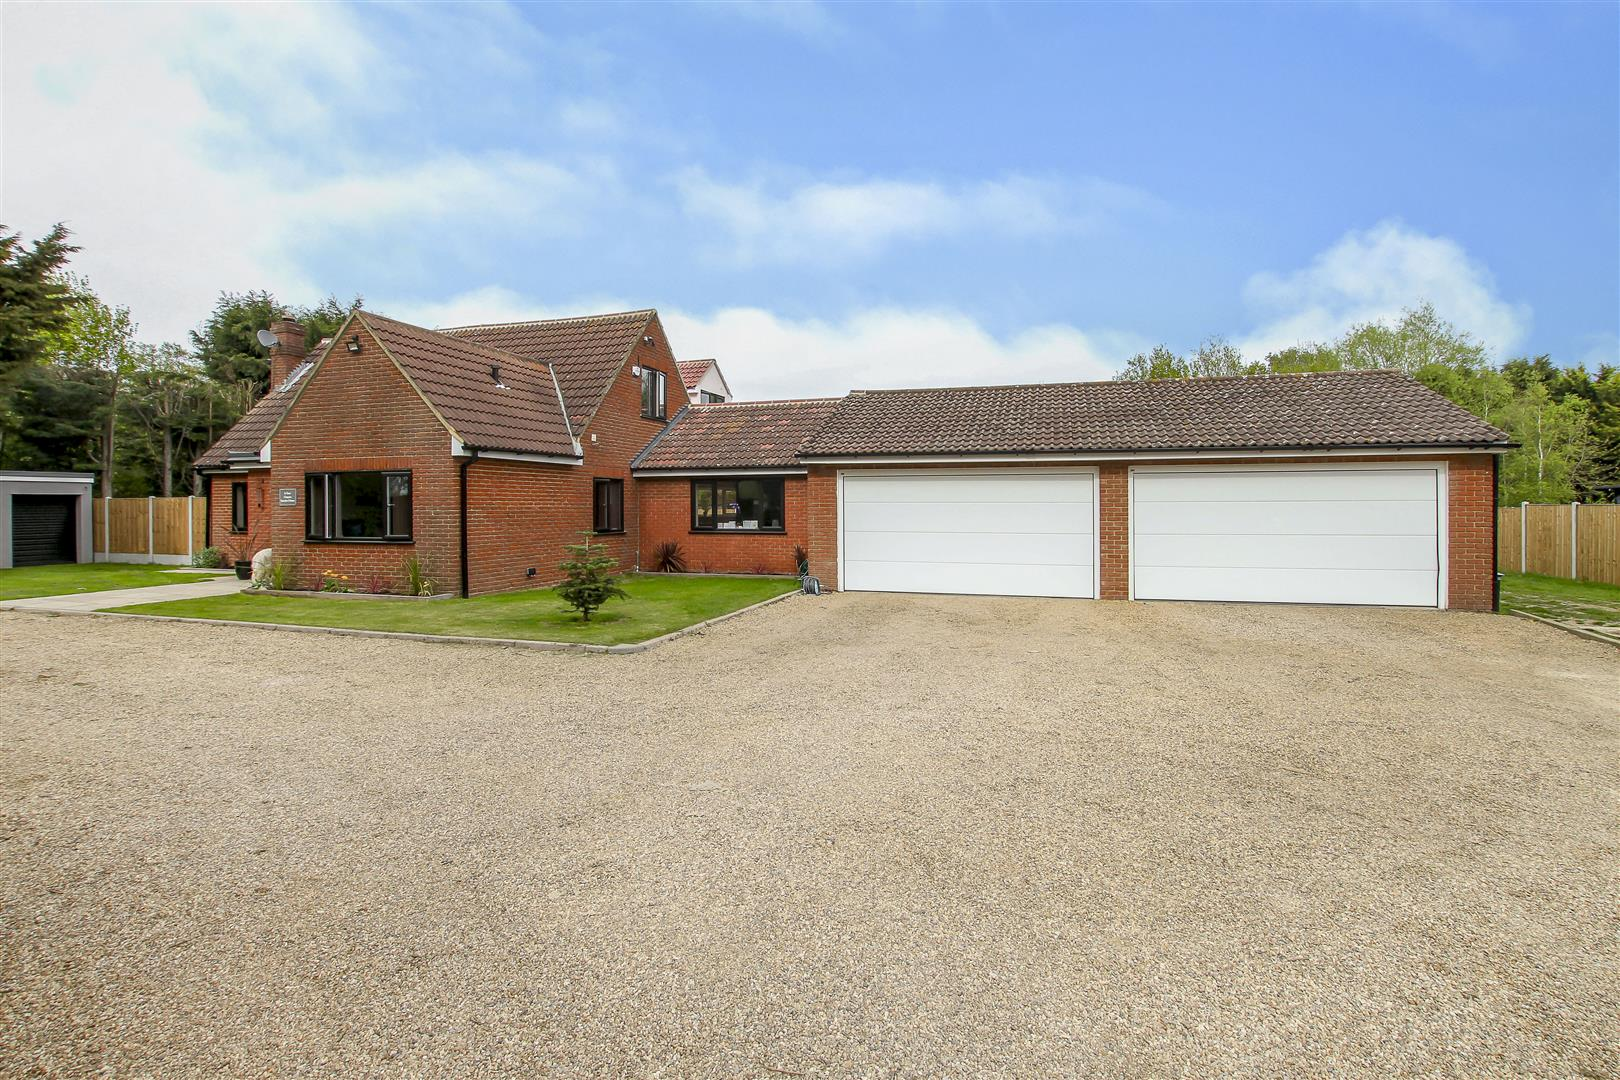 Chivers Road, Stondon Massey, Brentwood